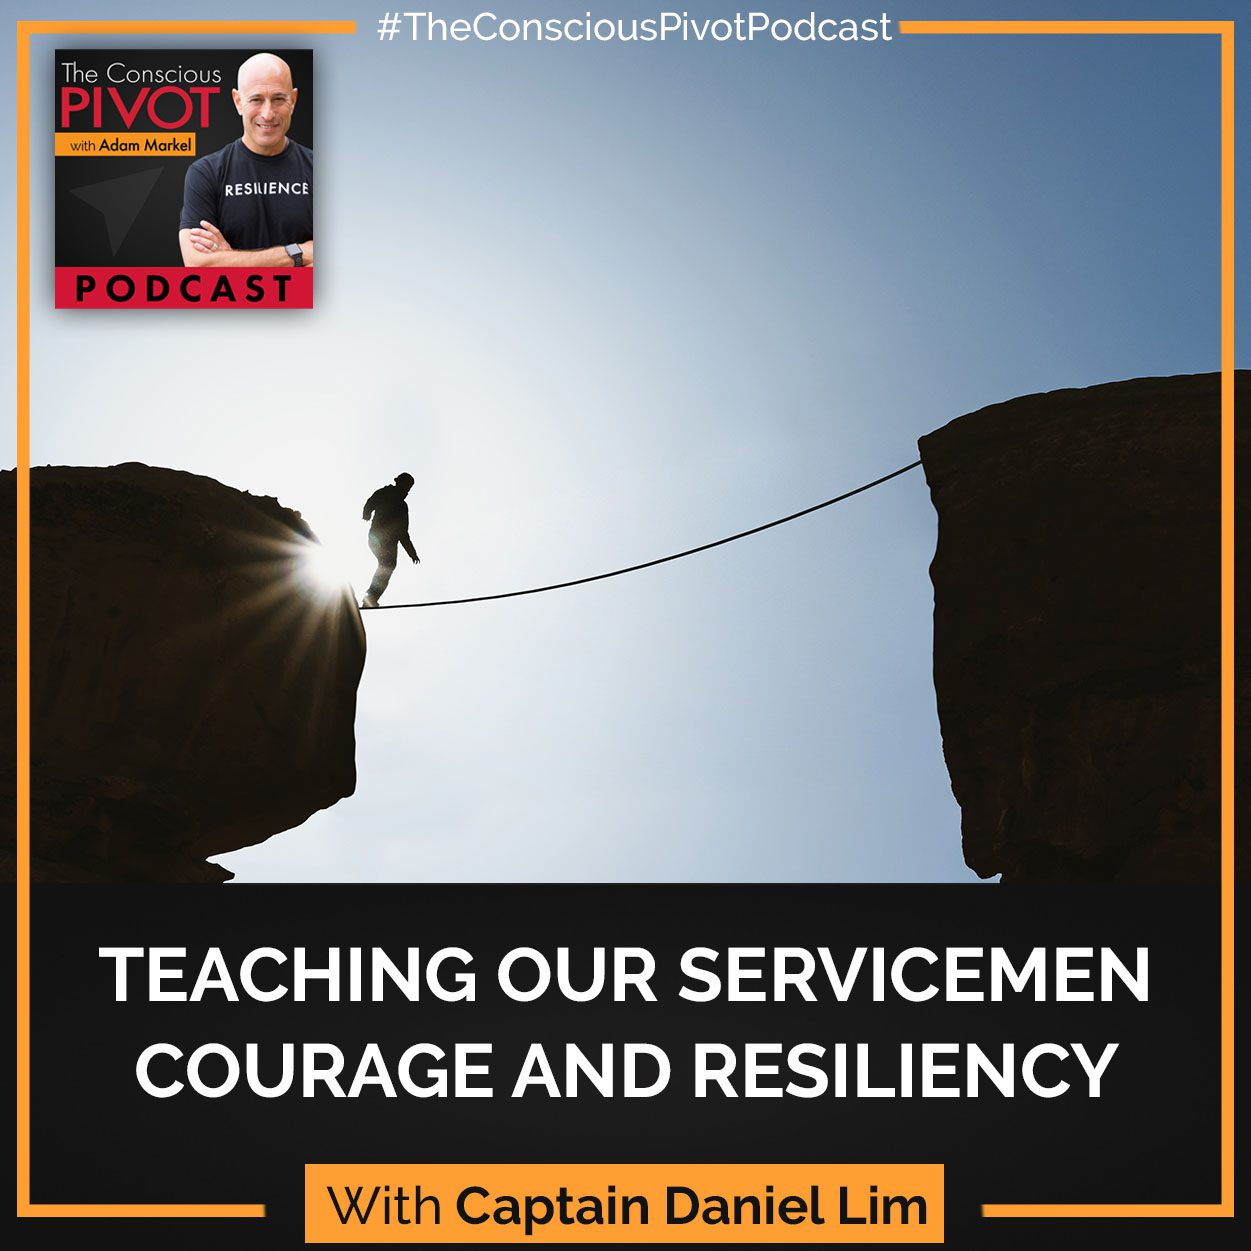 Teaching Our Servicemen Courage And Resiliency With Captain Daniel Lim